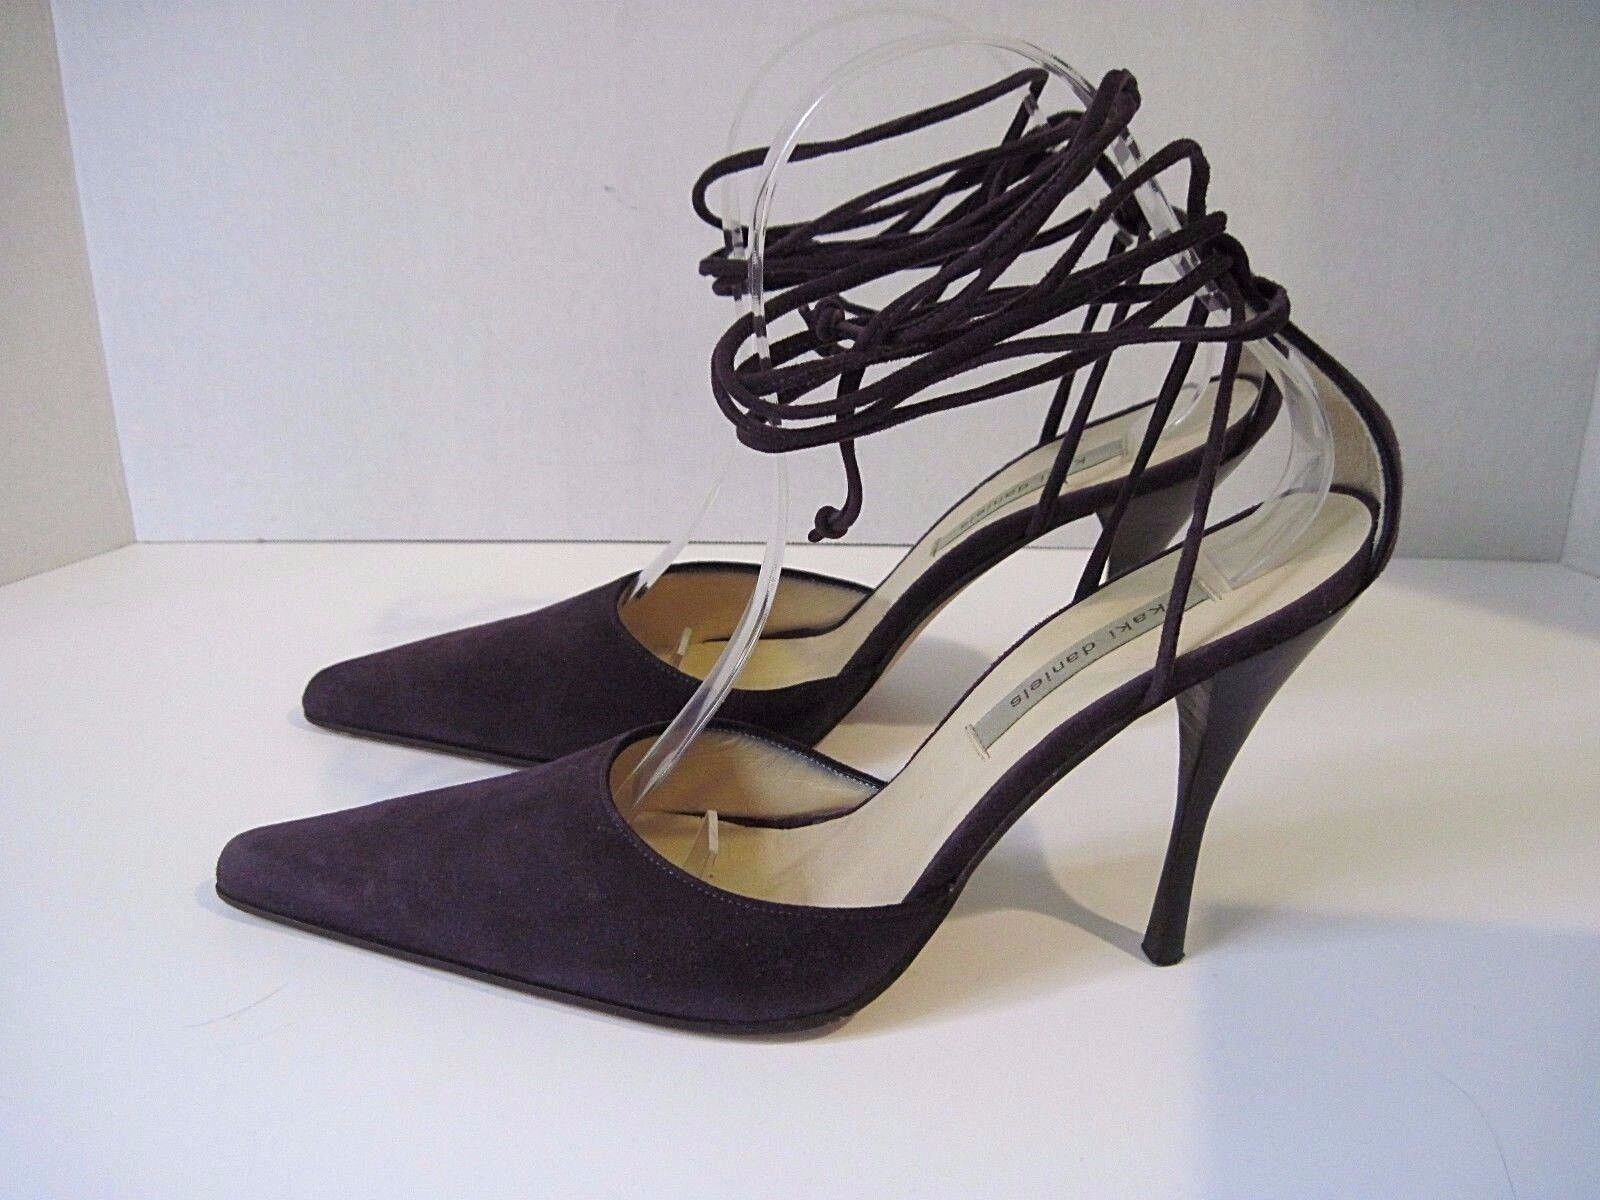 KAKI DANIELS' PURPLE SUEDE LEATHER STRAPPY ANKLE TIE STILETTO HEELS SIZE 37